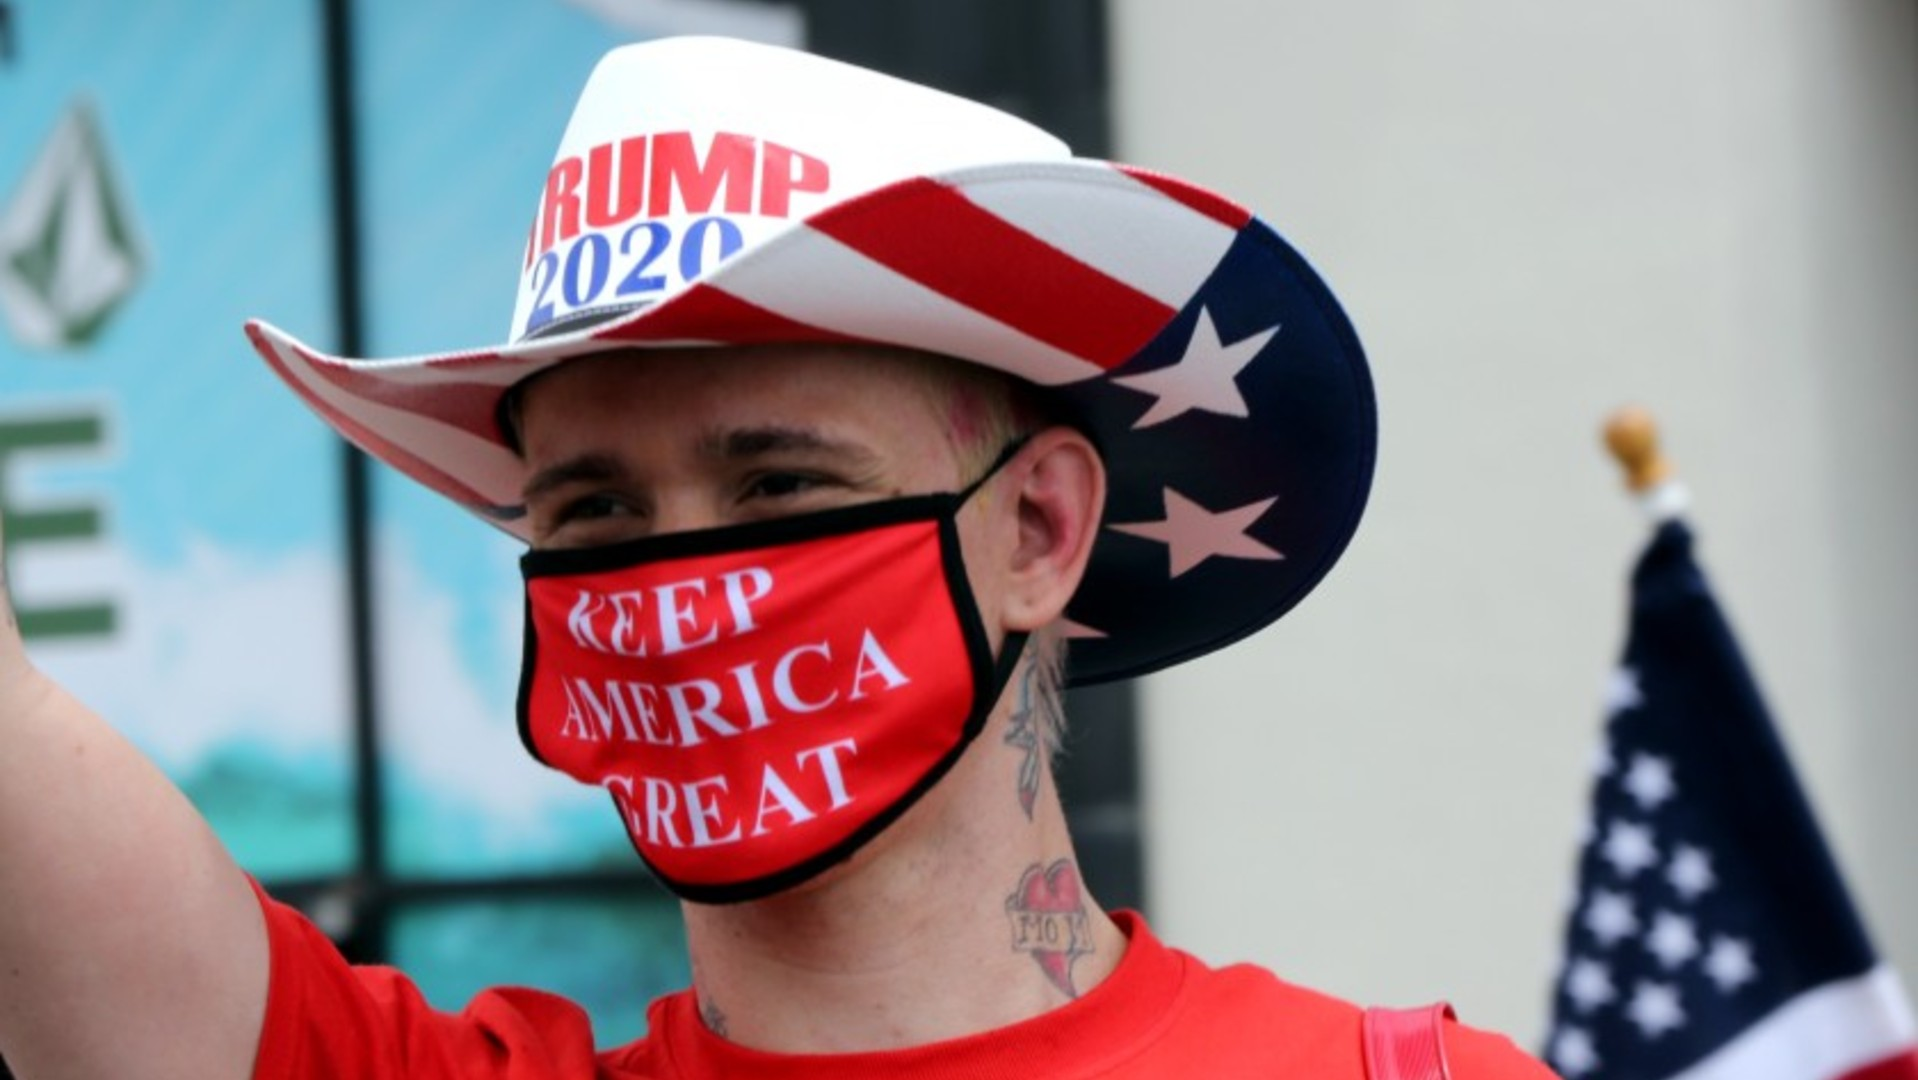 Kristopher Dreww takes part in a demonstration in May in Huntington Beach.(Raul Roa / Los Angeles Times)